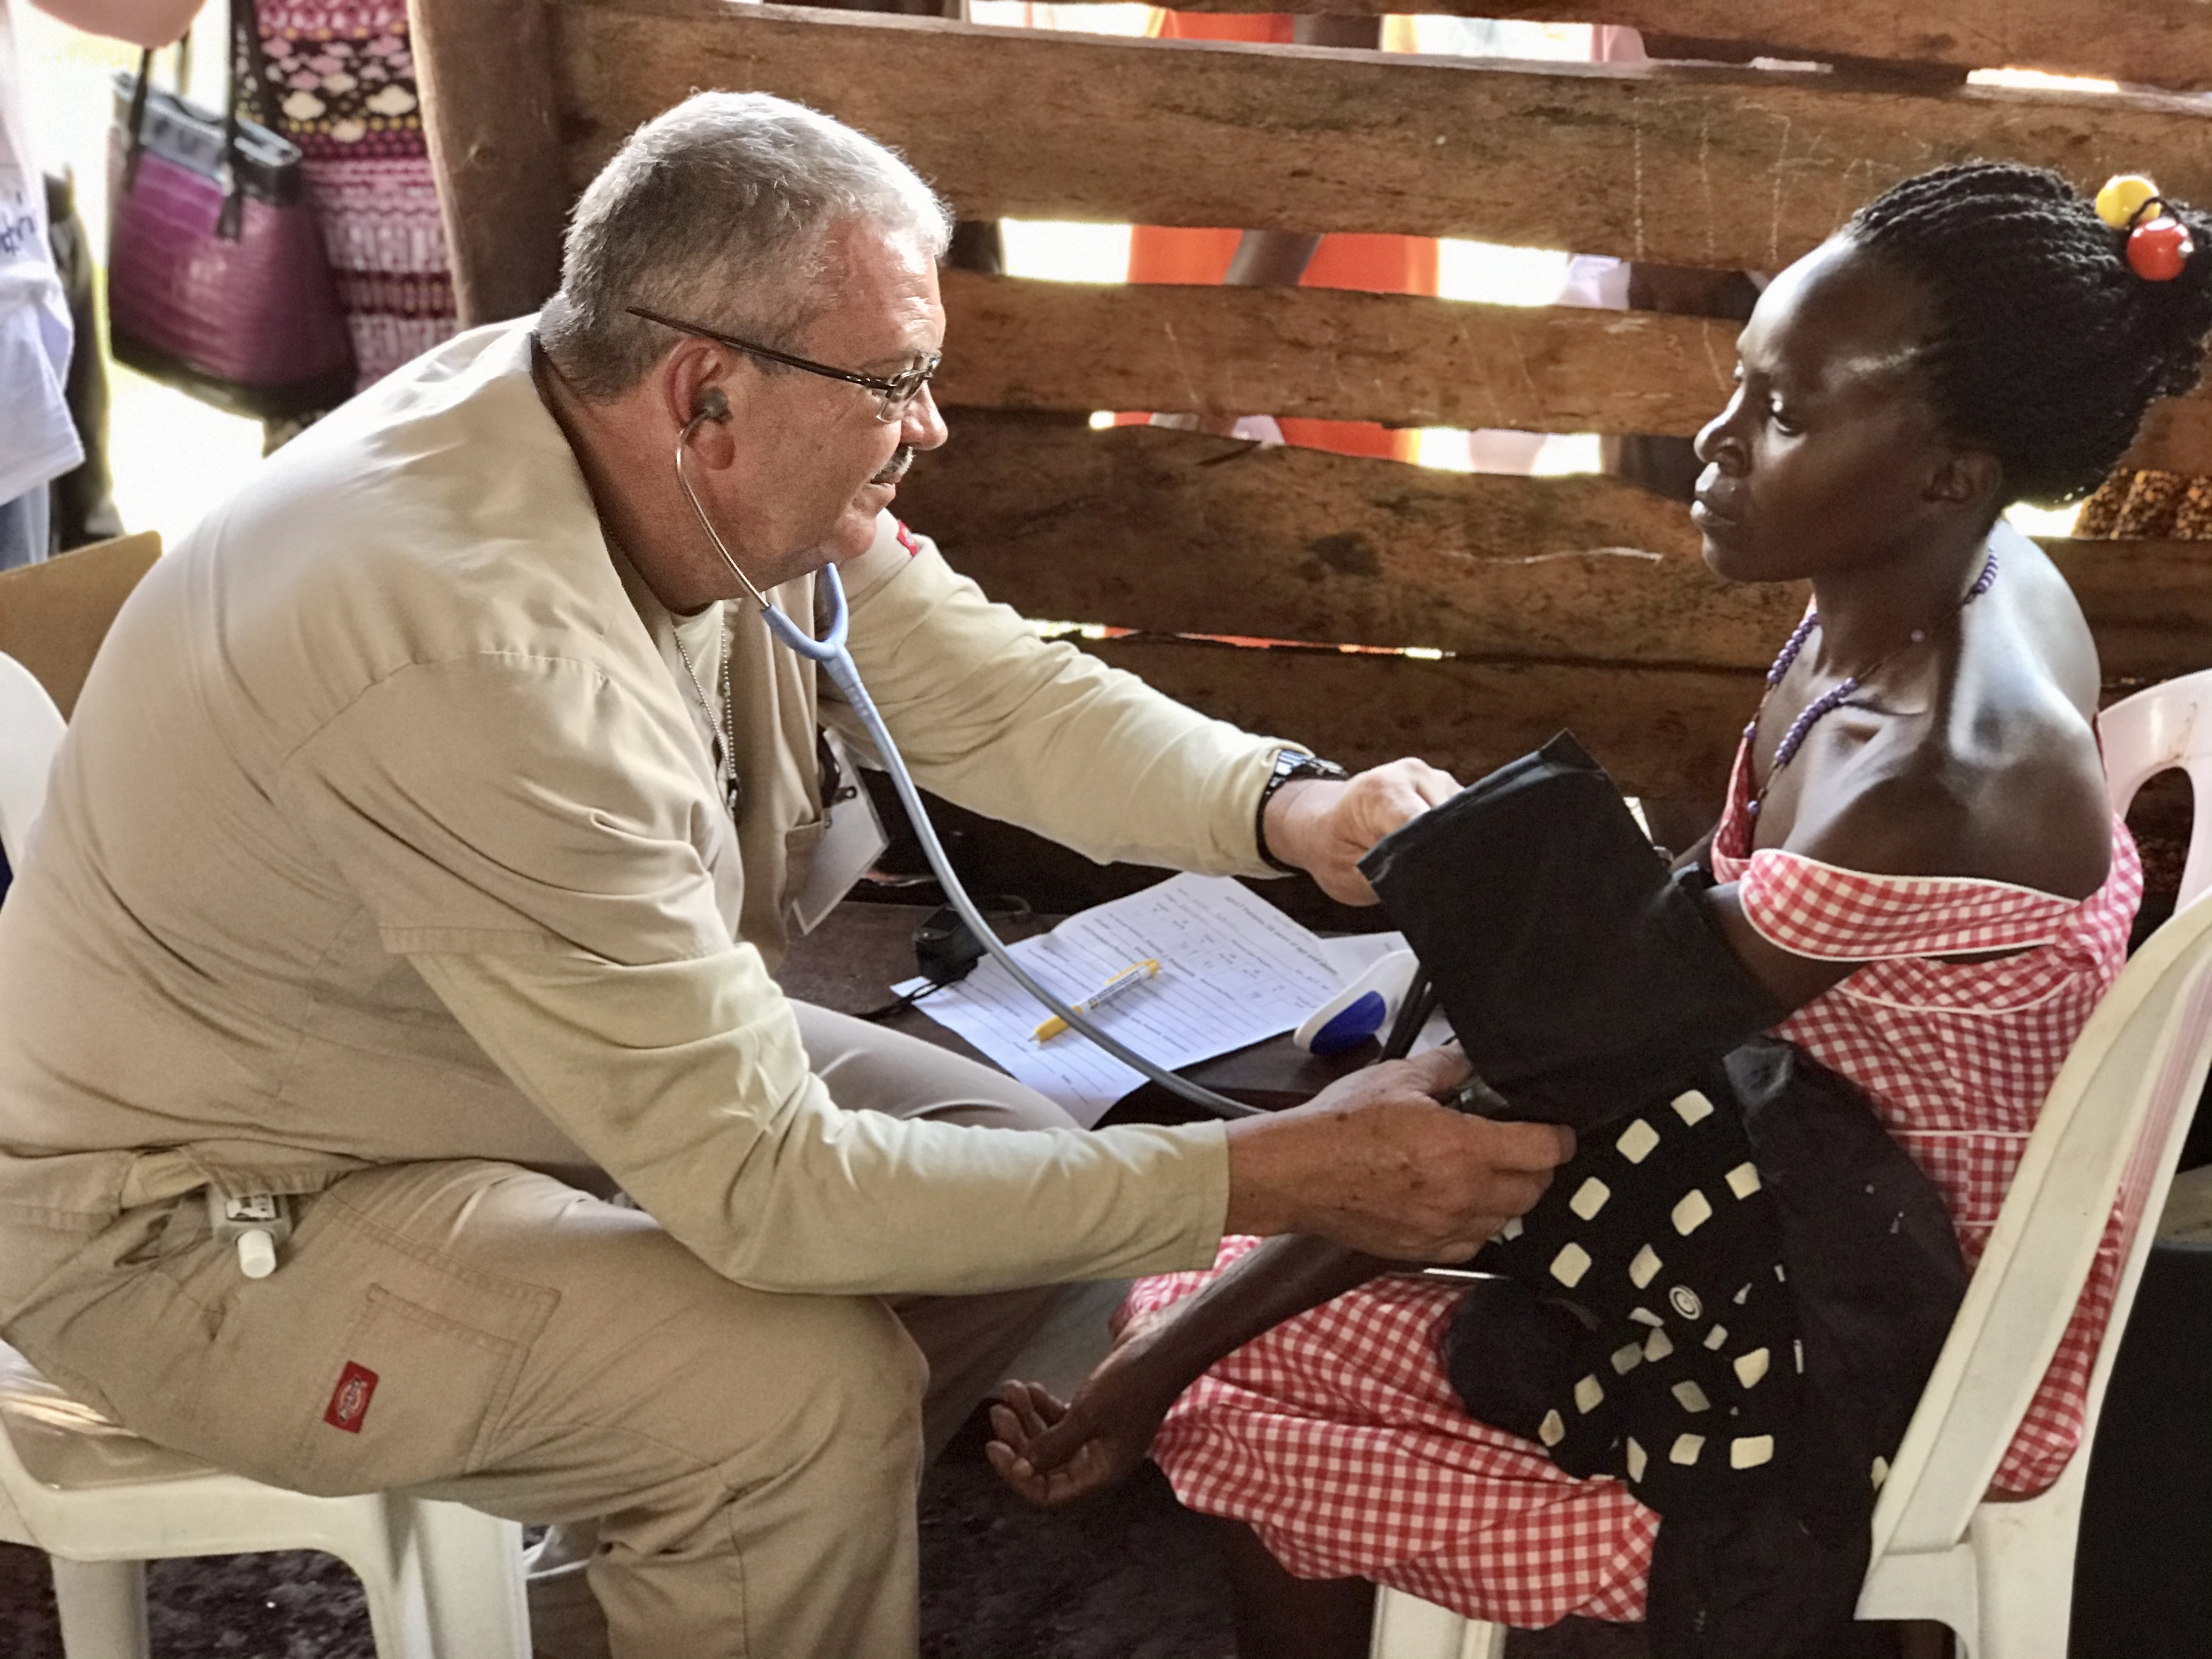 Ron Herman checks vital signs on a patient during the Mercy Medical Team trip to Uganda. Used with permission.